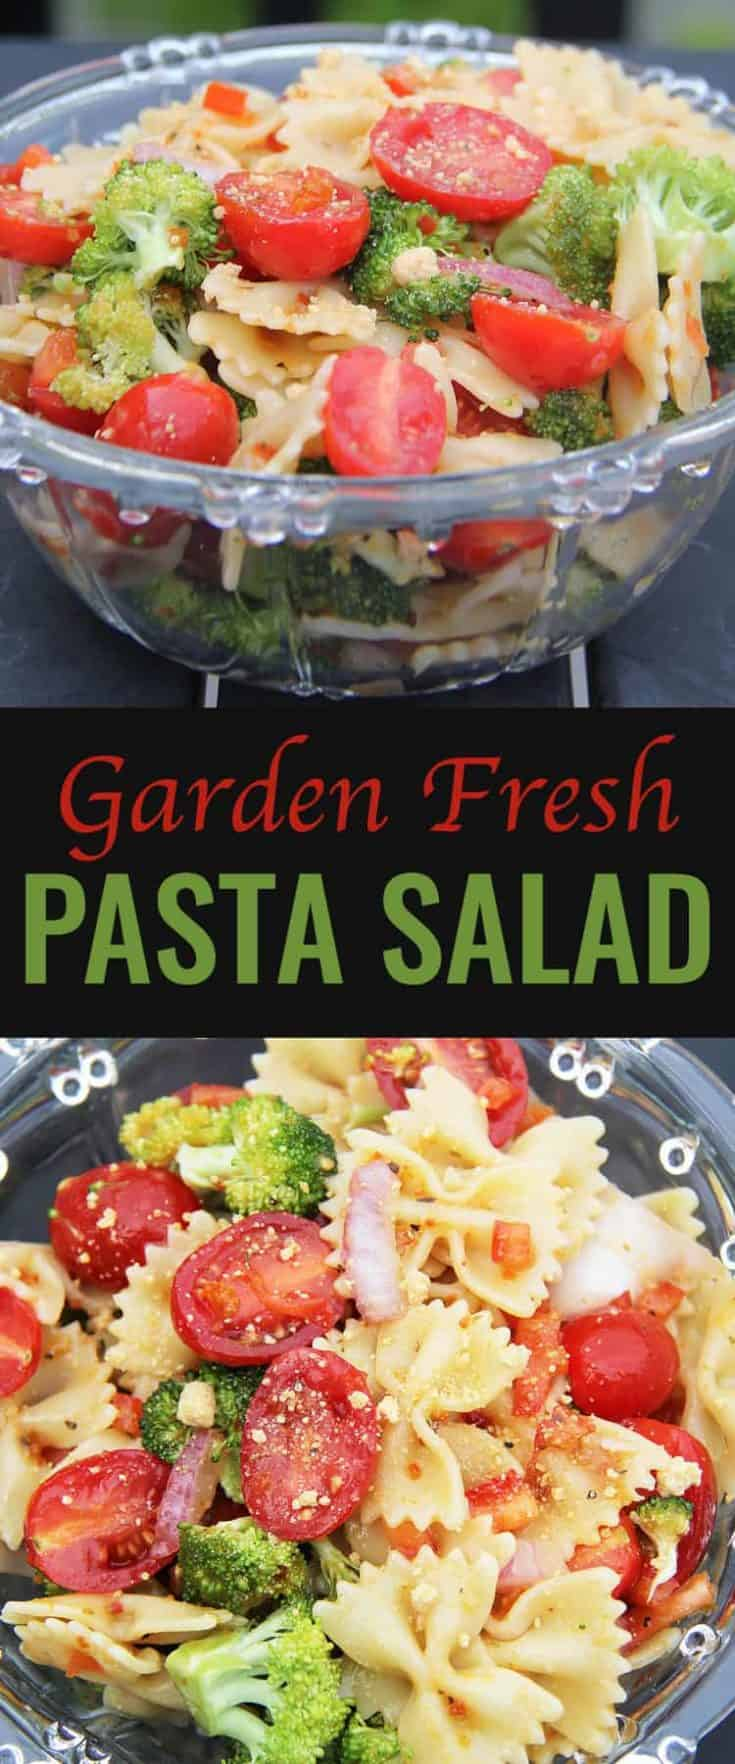 This Garden-Fresh Pasta Salad recipe uses fresh but common ingredients, and total ease in making it. Plus, I just cannot get enough cherry tomatoes right now! #pastasalad #salad #saladrecipe